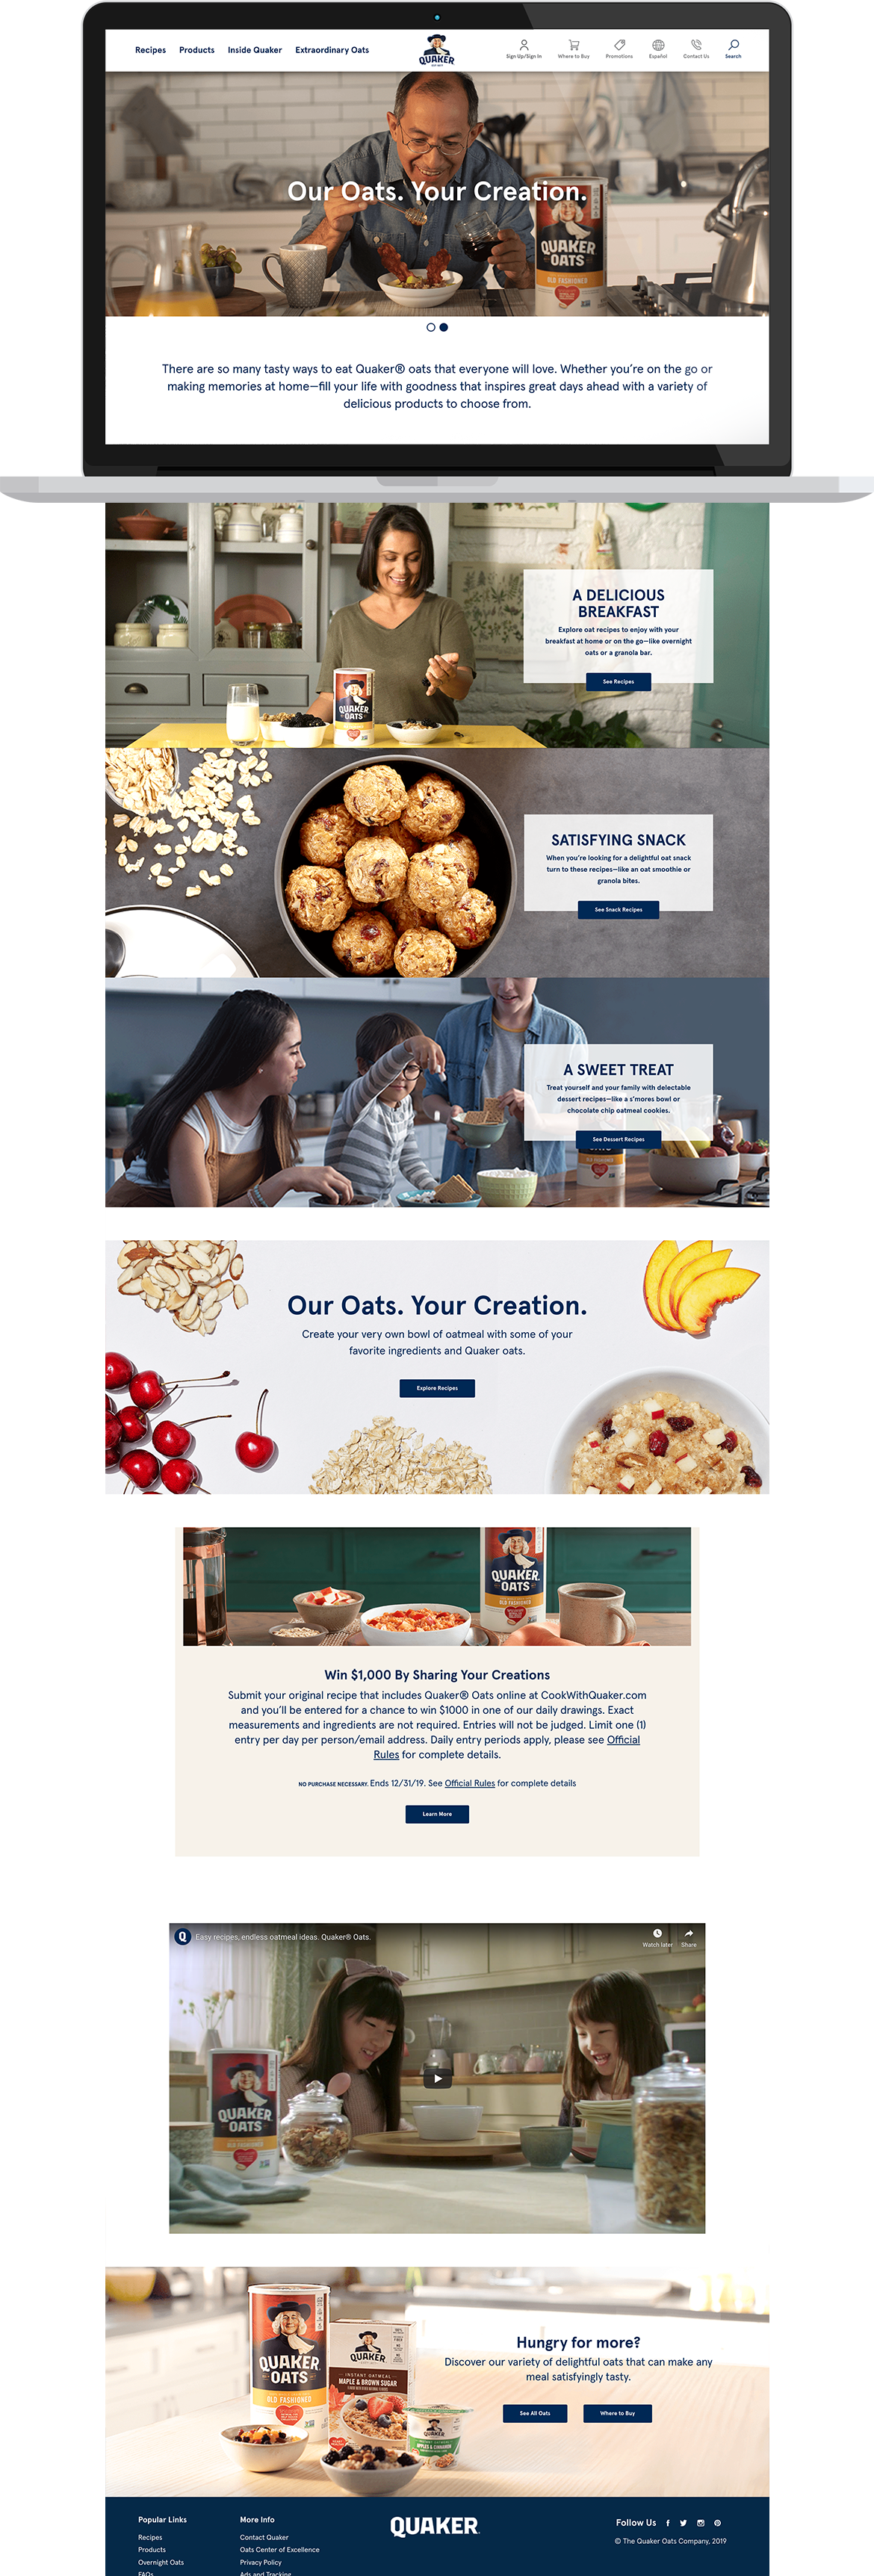 quaker-website-pg sm